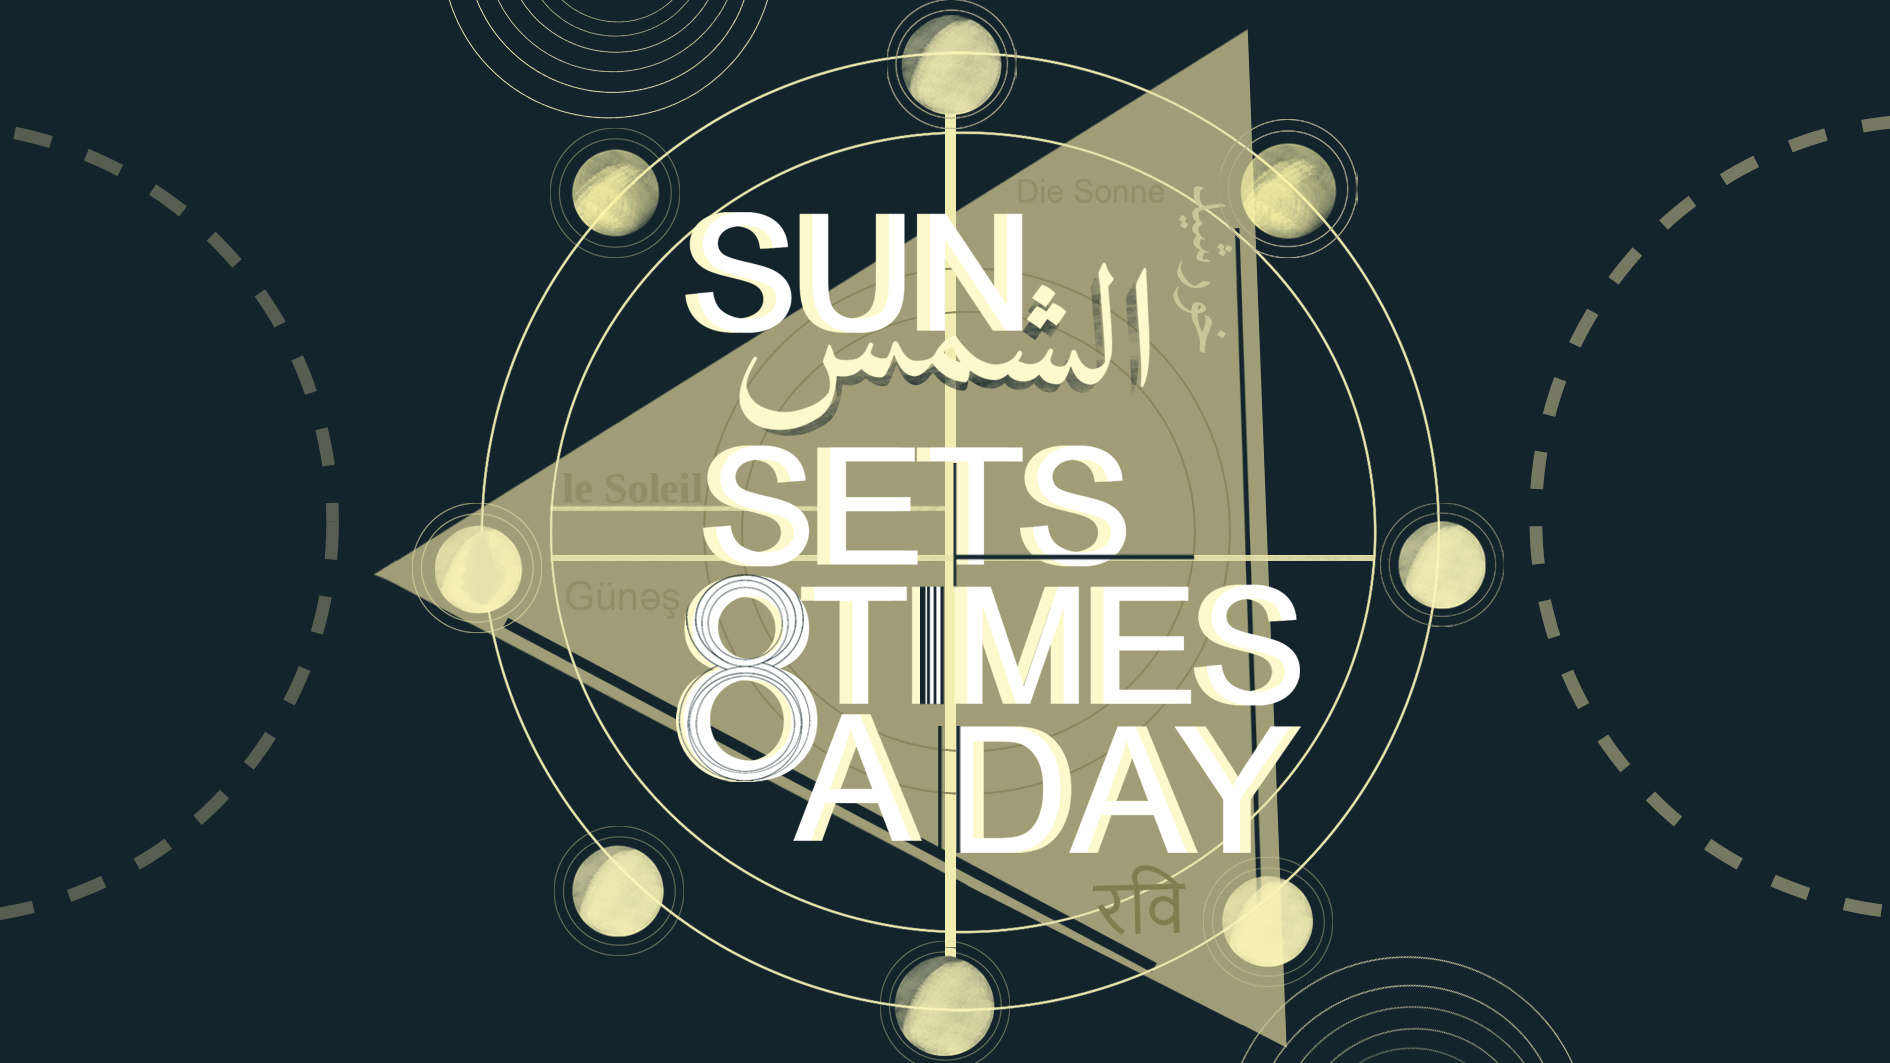 The Sun Sets Eight Times A Day